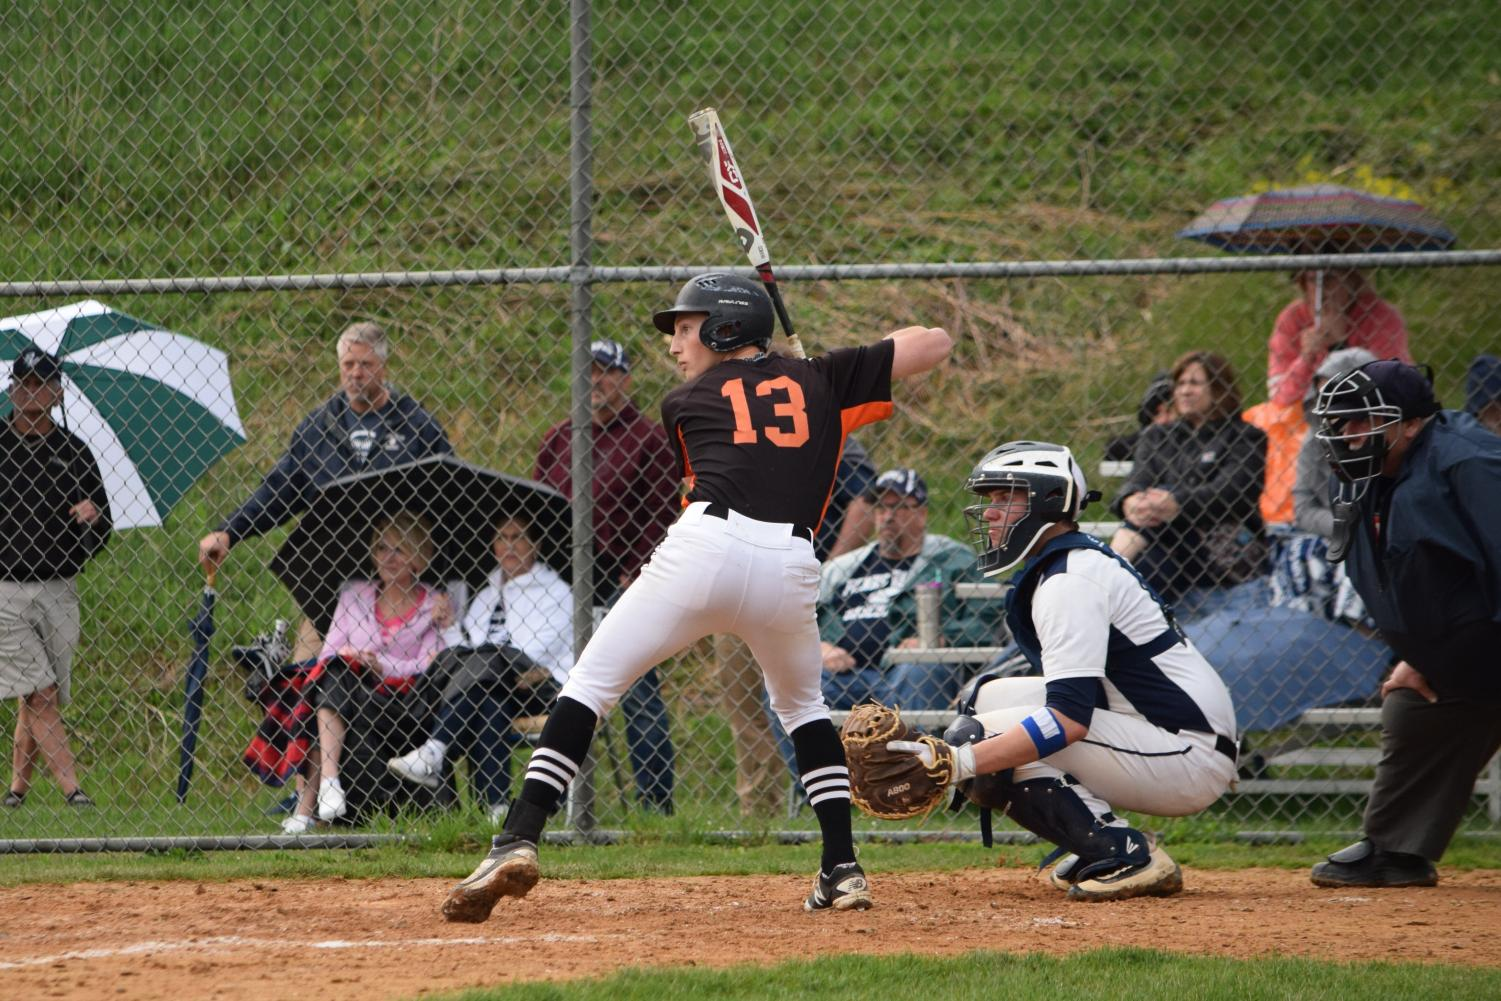 Andrew Pearson batting against Penns Valley on senior night